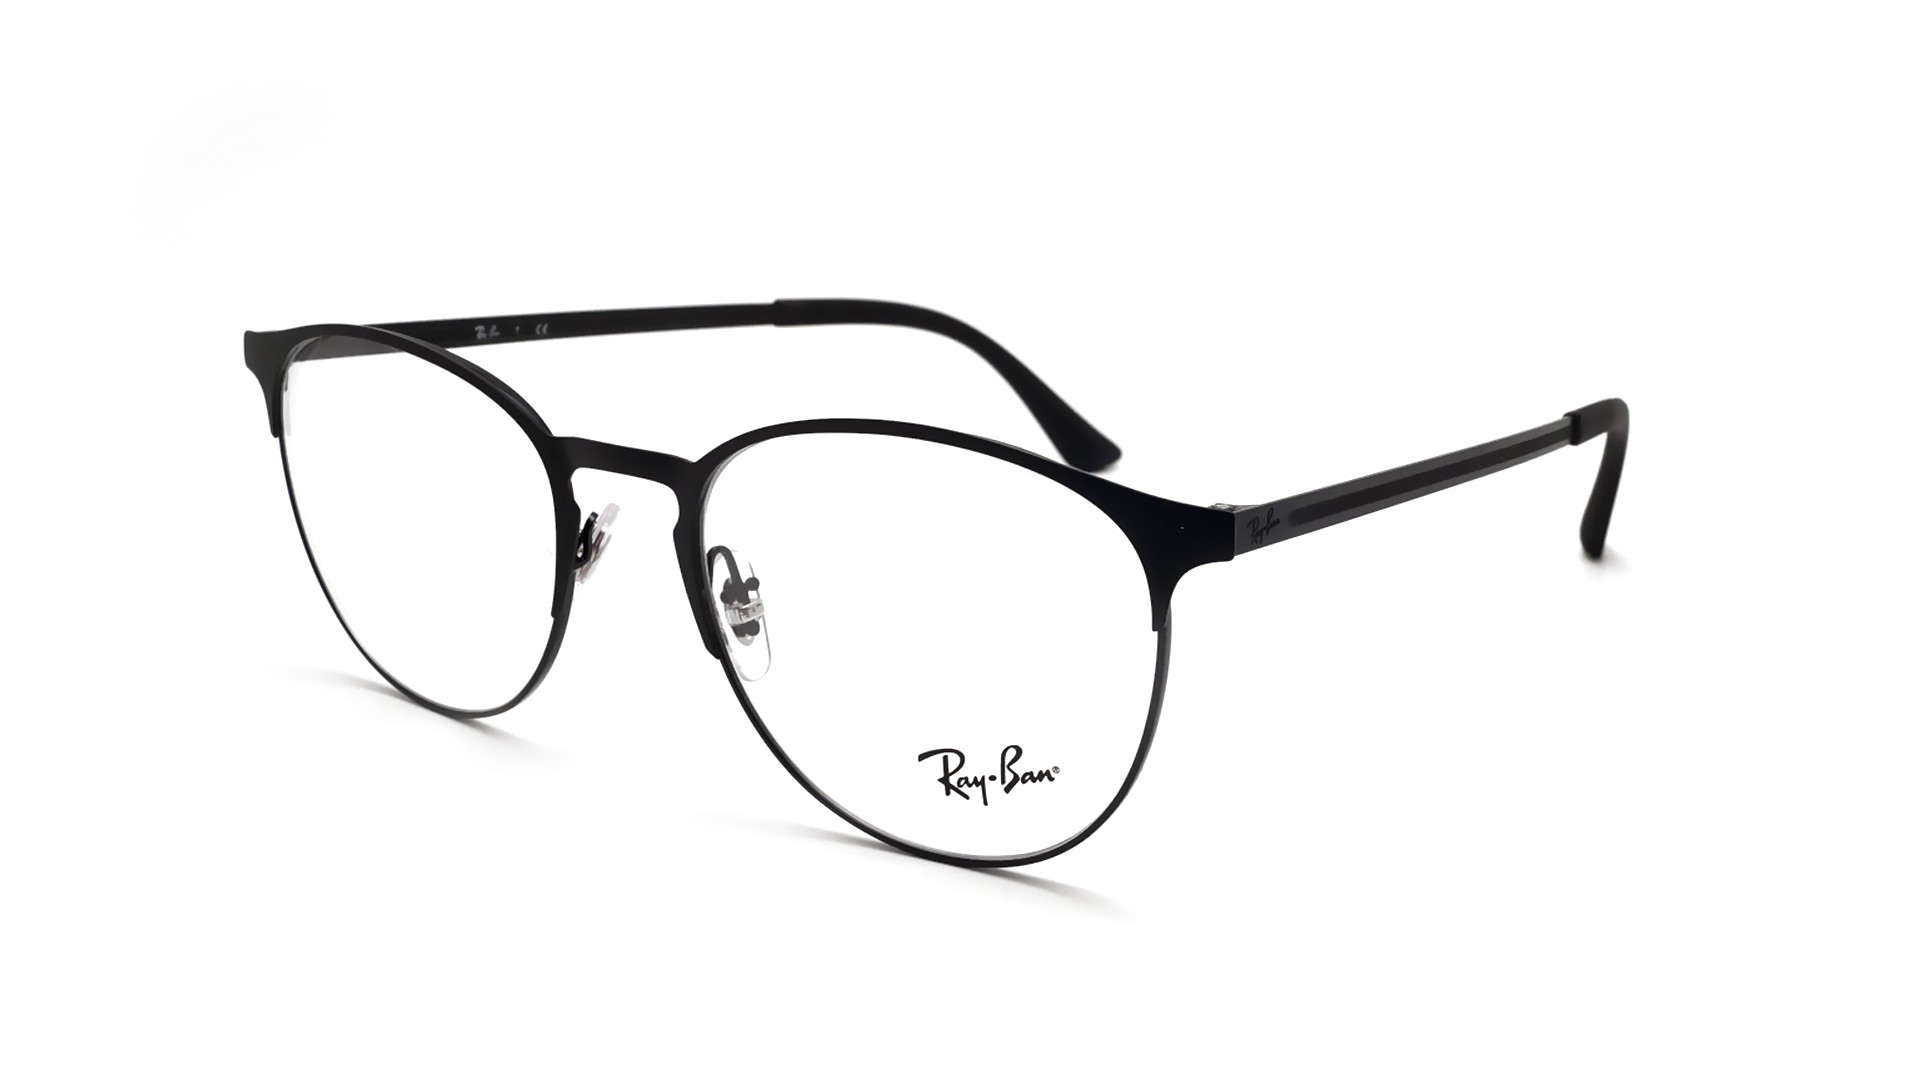 a506150590 Ray Ban Rb2180v 5675